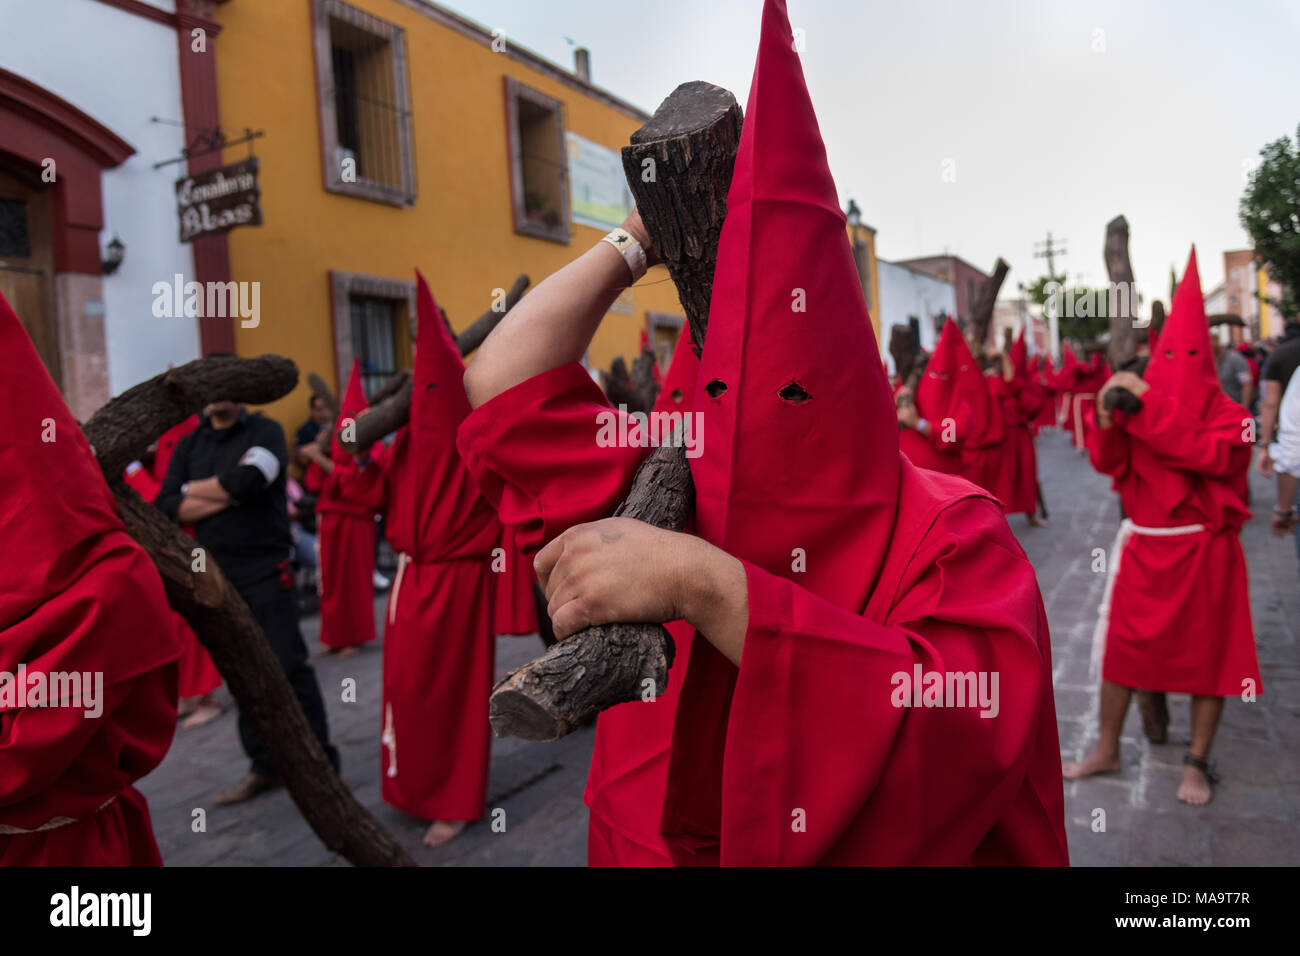 Queretaro, Mexico, 31 Mar 2018. Hooded penitents carry wooden crosses during the Procession of Silence through the streets on Good Friday during Holy Week March 30, 2018 in Querétaro, Mexico. The penitents, known as Nazarenes, carry the heavy crosses and drag chains in a four hour march in memory of the passion of Christ. Credit: Planetpix/Alamy Live News - Stock Image